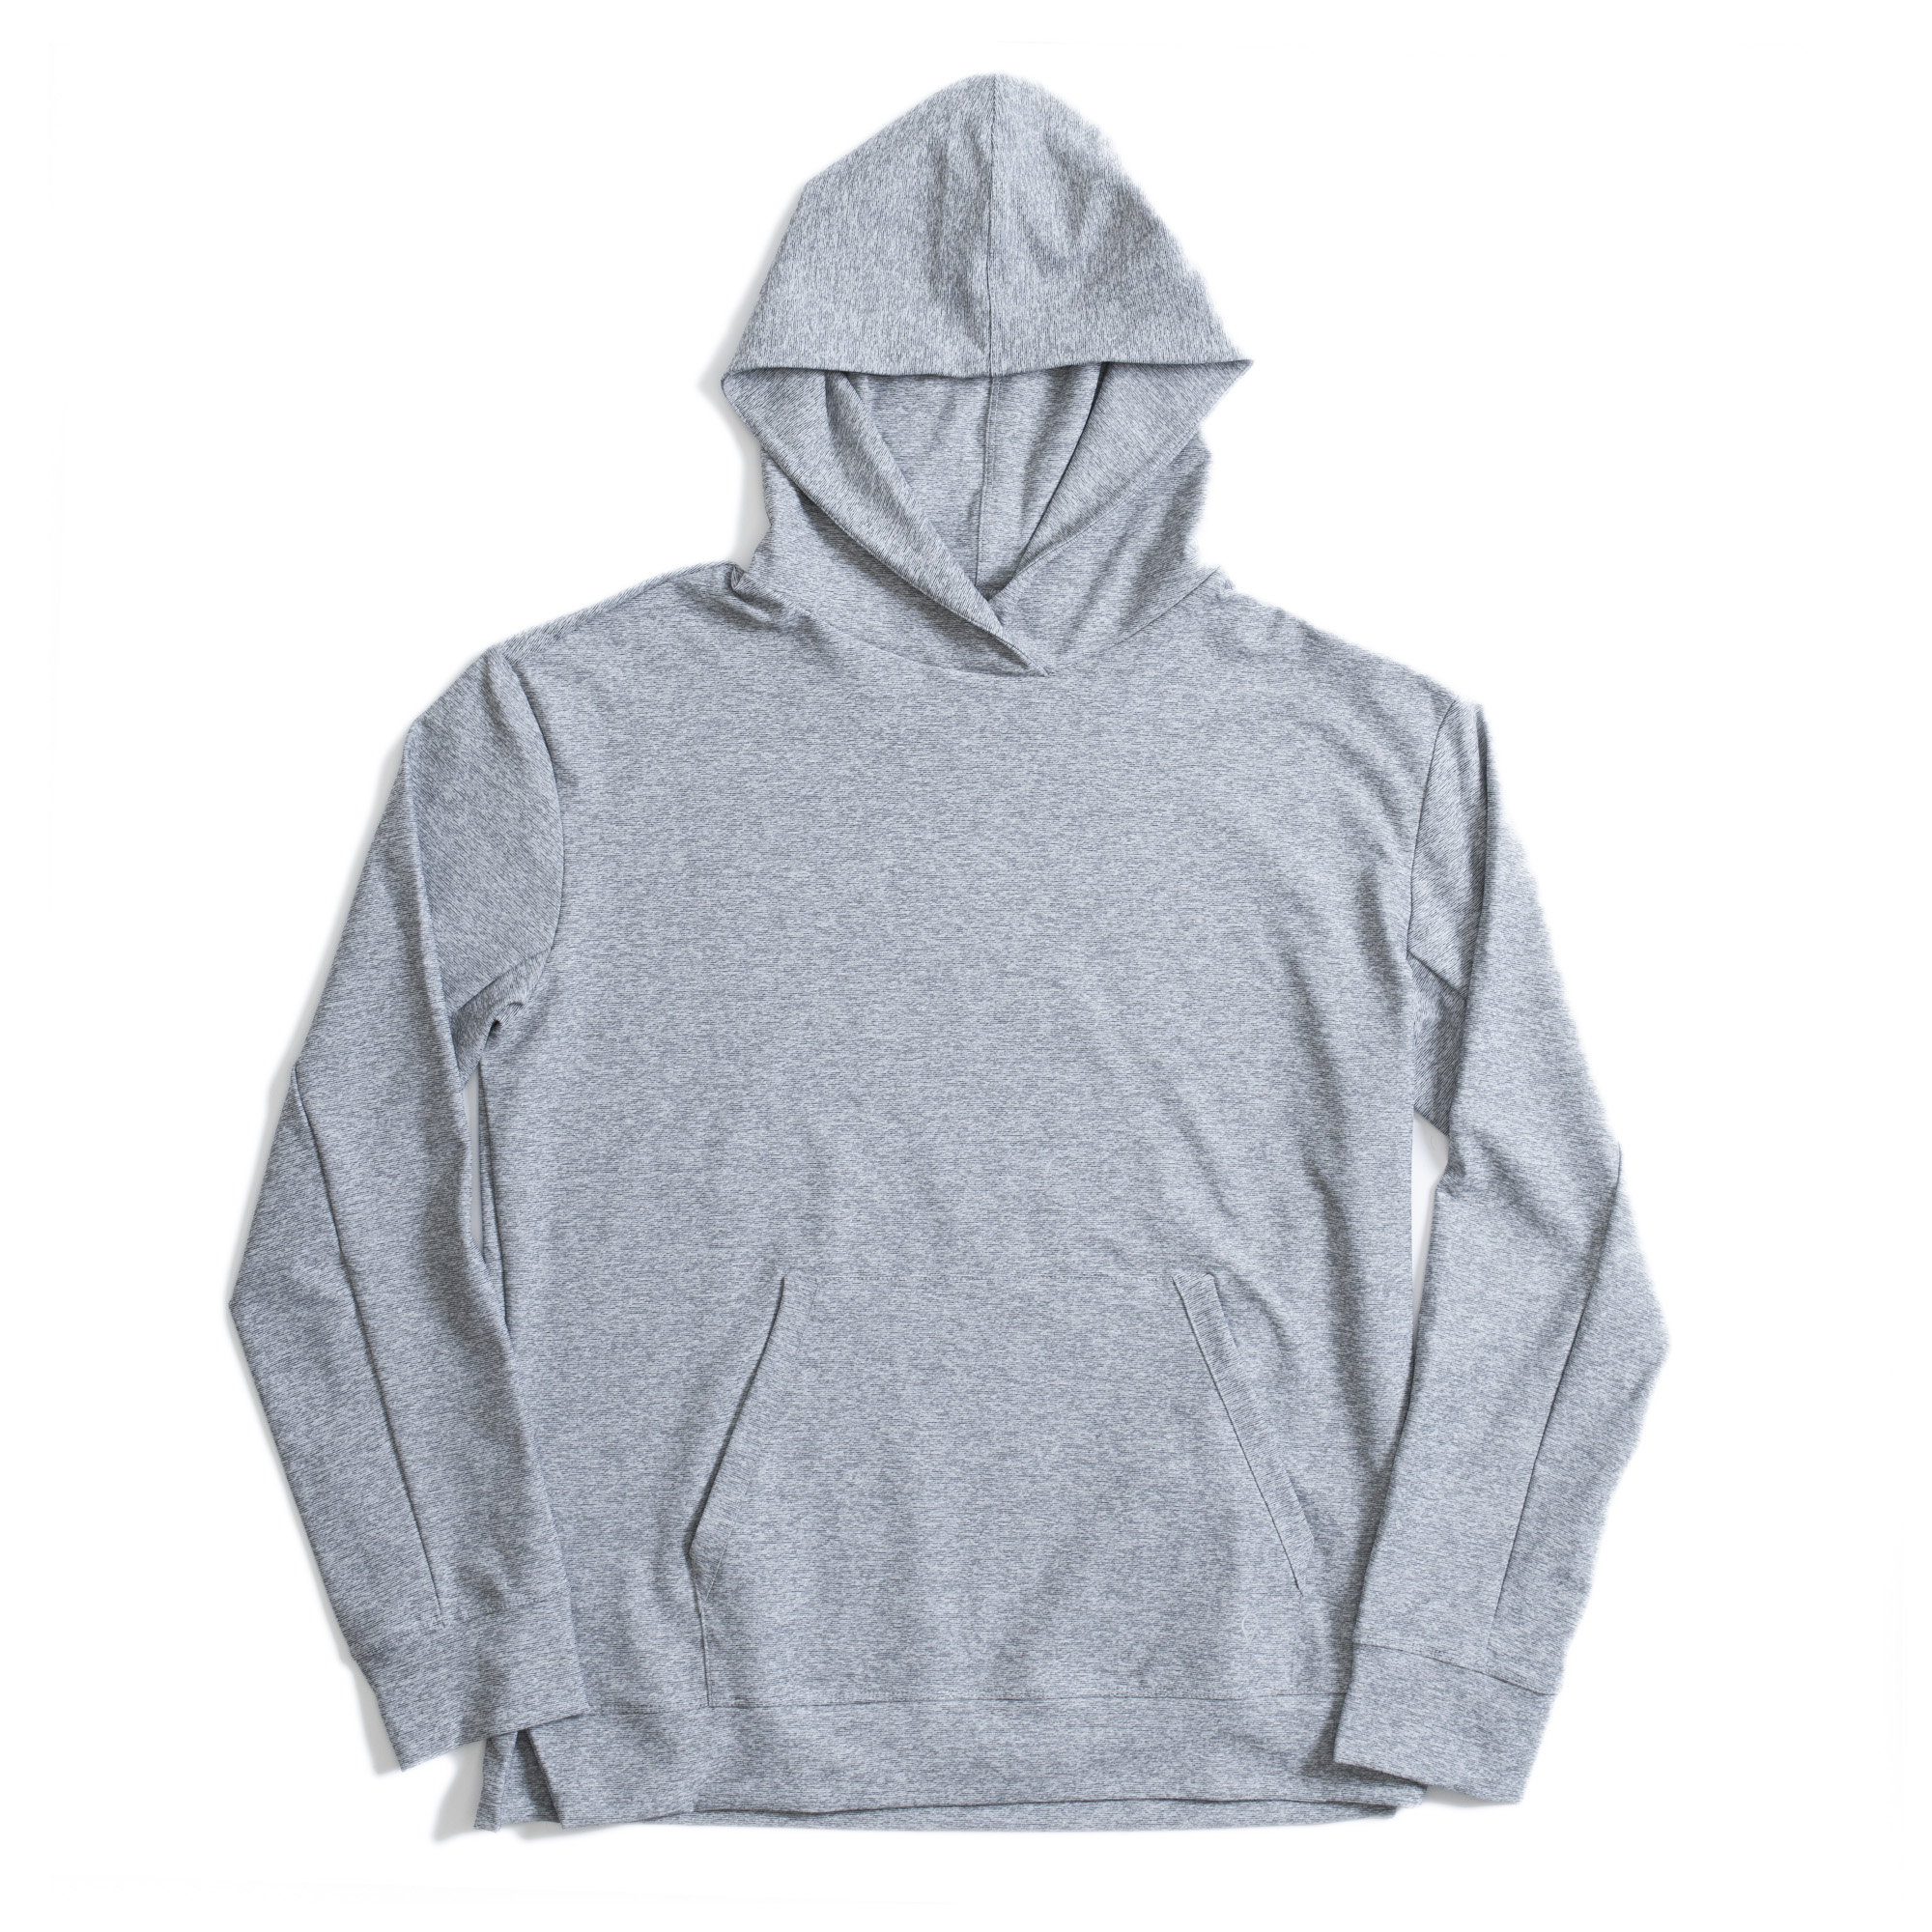 Outdoor voices upstate hoodie the practical man sports